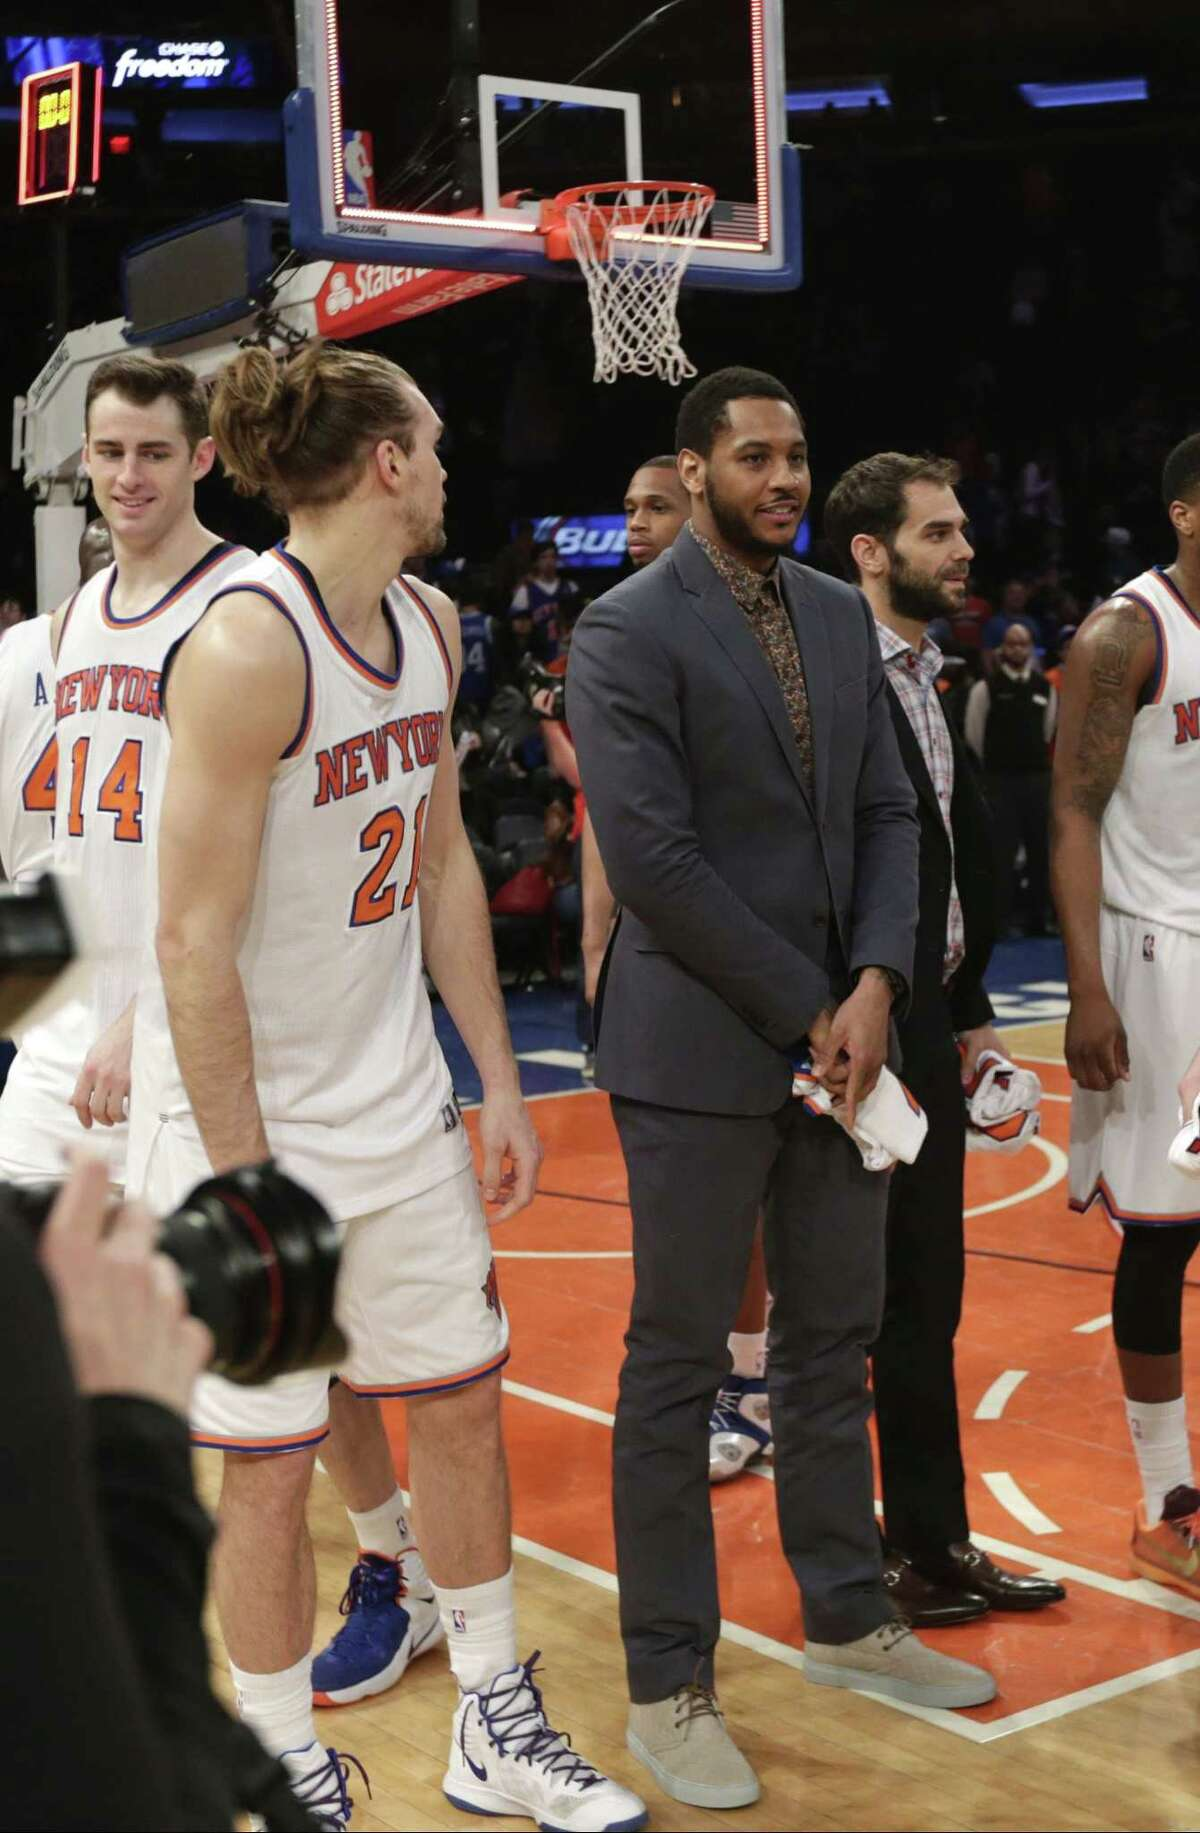 Knicks star Carmelo Anthony stands on the court with his teammates after a game against the Detroit Pistons on Wednesday in New York.